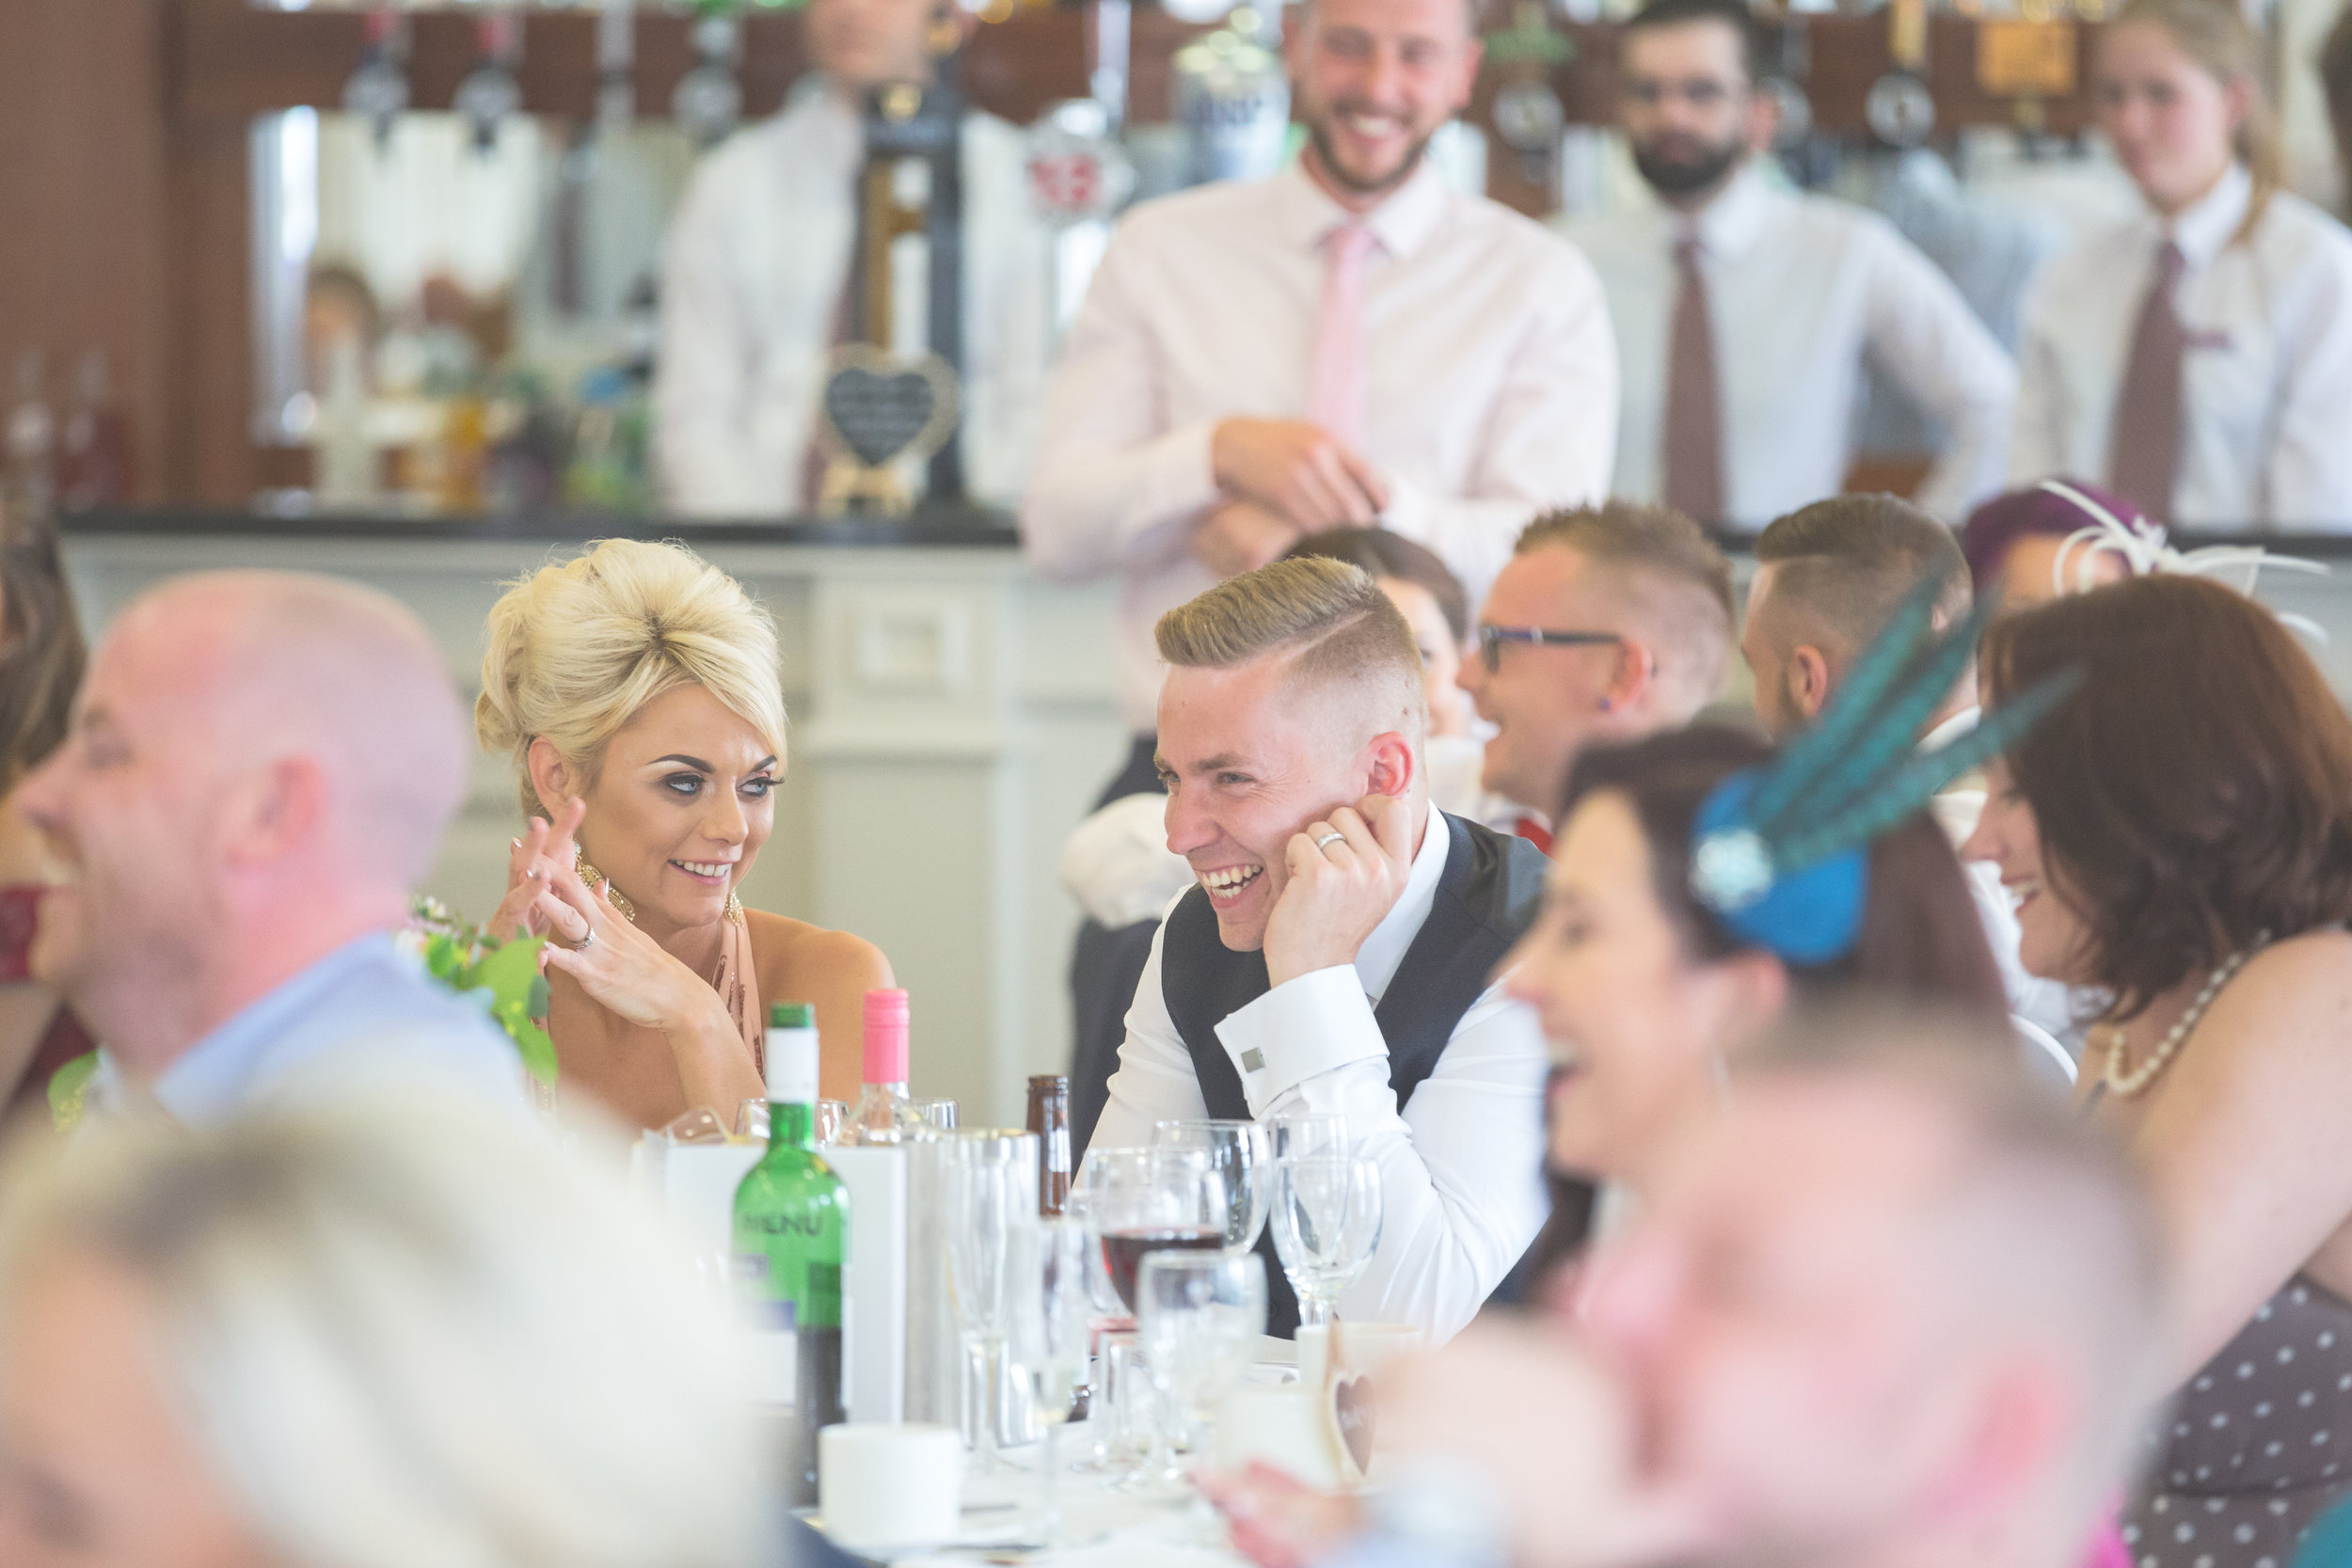 Antoinette & Stephen - Speeches | Brian McEwan Photography | Wedding Photographer Northern Ireland 91.jpg